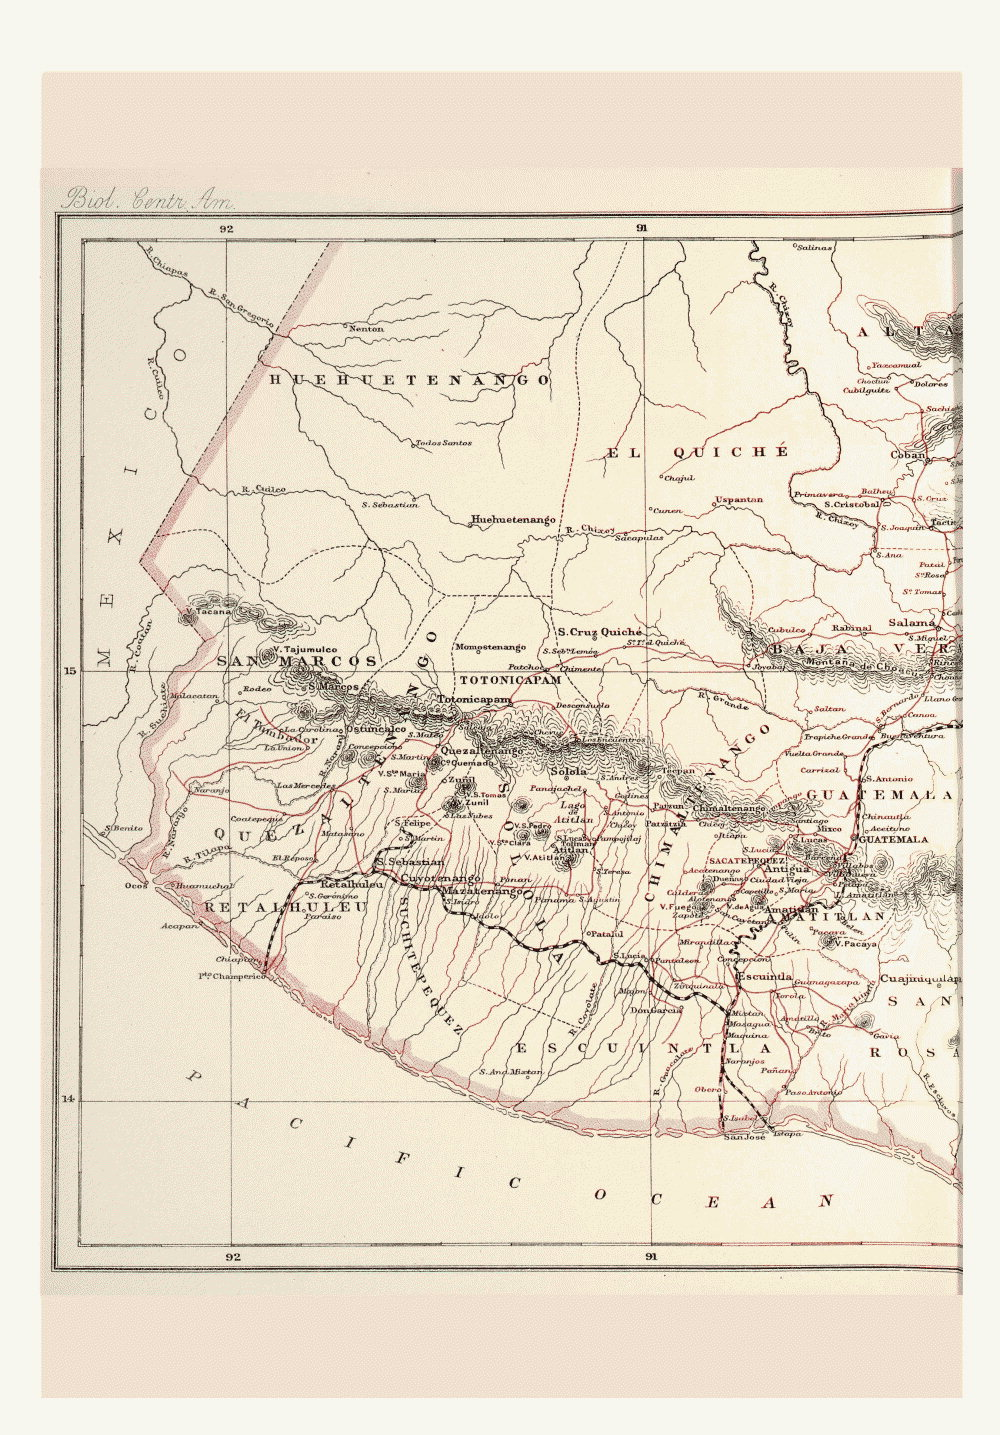 Maps of Central America,  Image number:bca_01_00_00_202